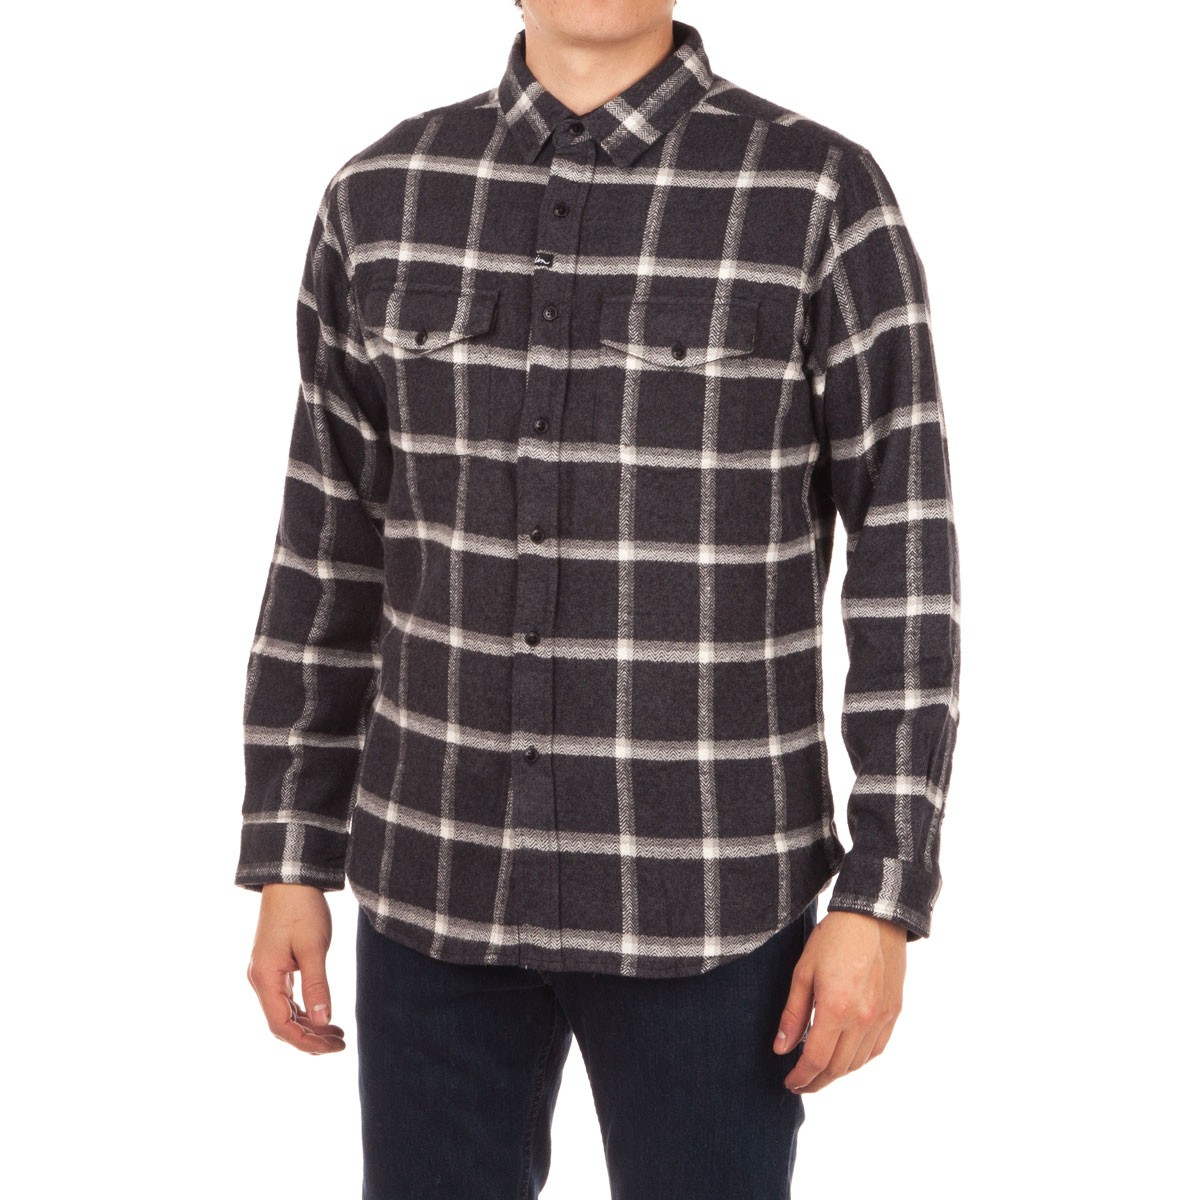 Imperial Motion Morton Long Sleeve Flannel Shirt - Coal